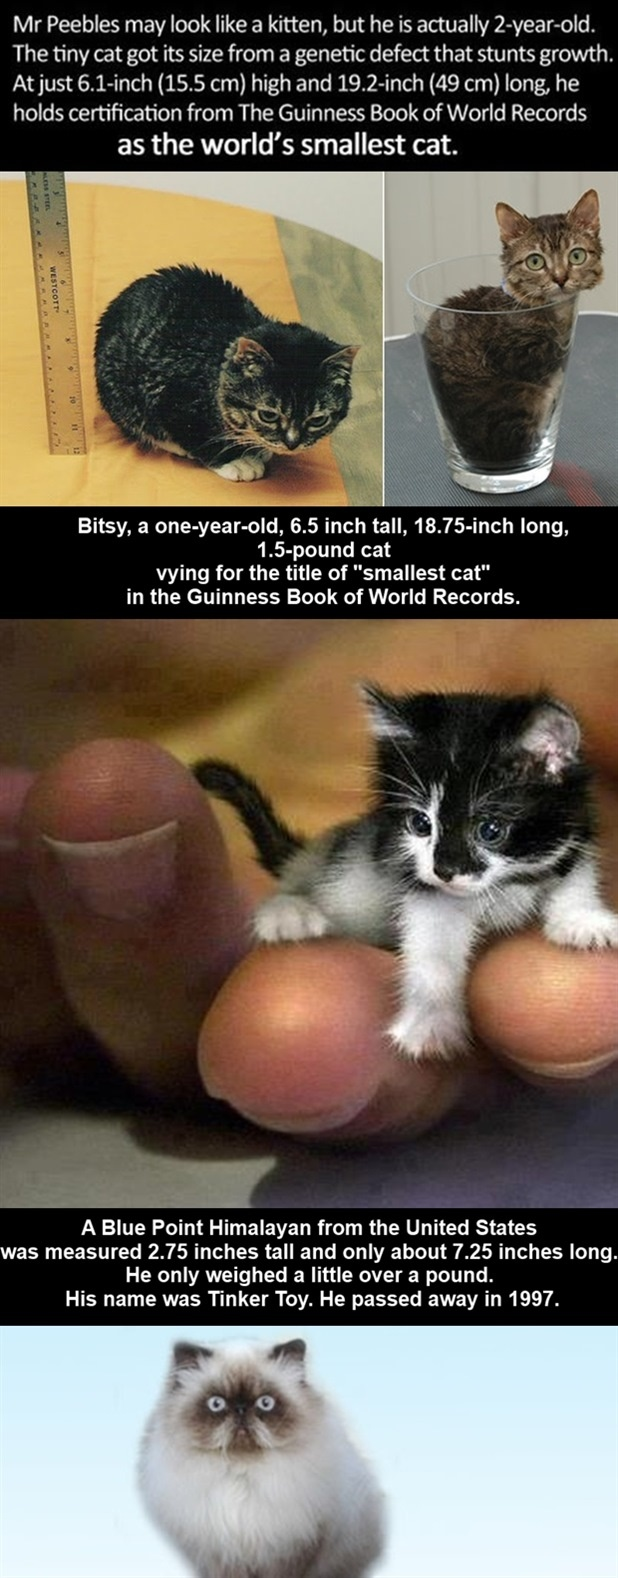 guinness world records book 2015 weird record breakers guinness - Smallest Cat In The World Guinness 2015